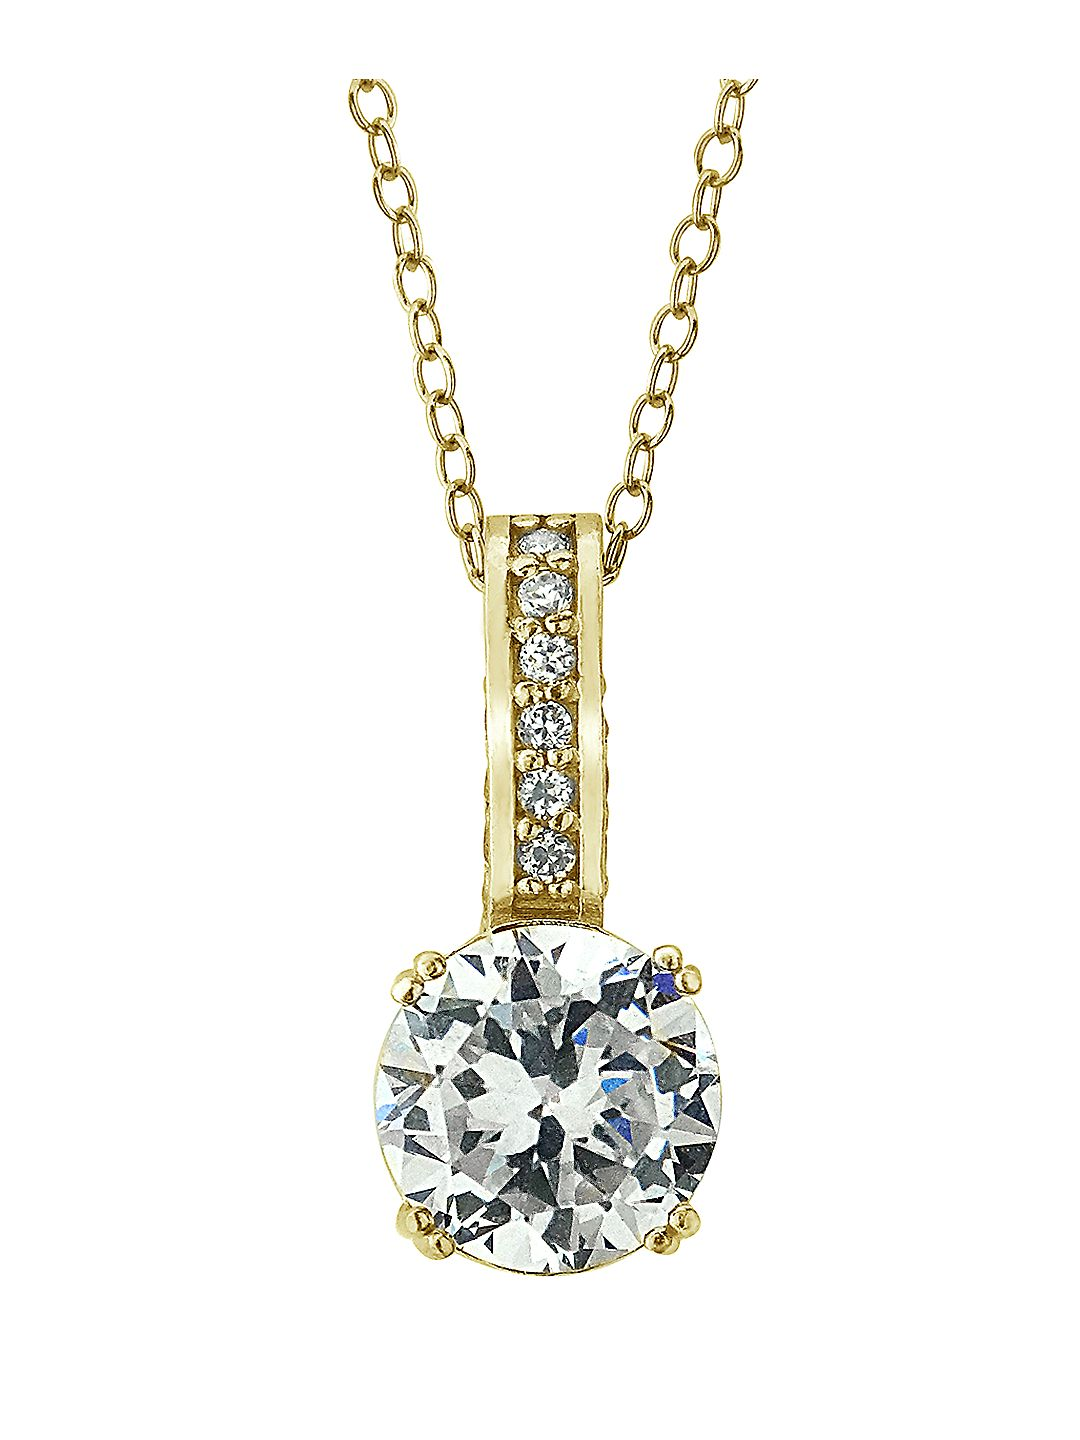 18Kt Gold and Cubic Zirconia Solitaire Pendant Necklace